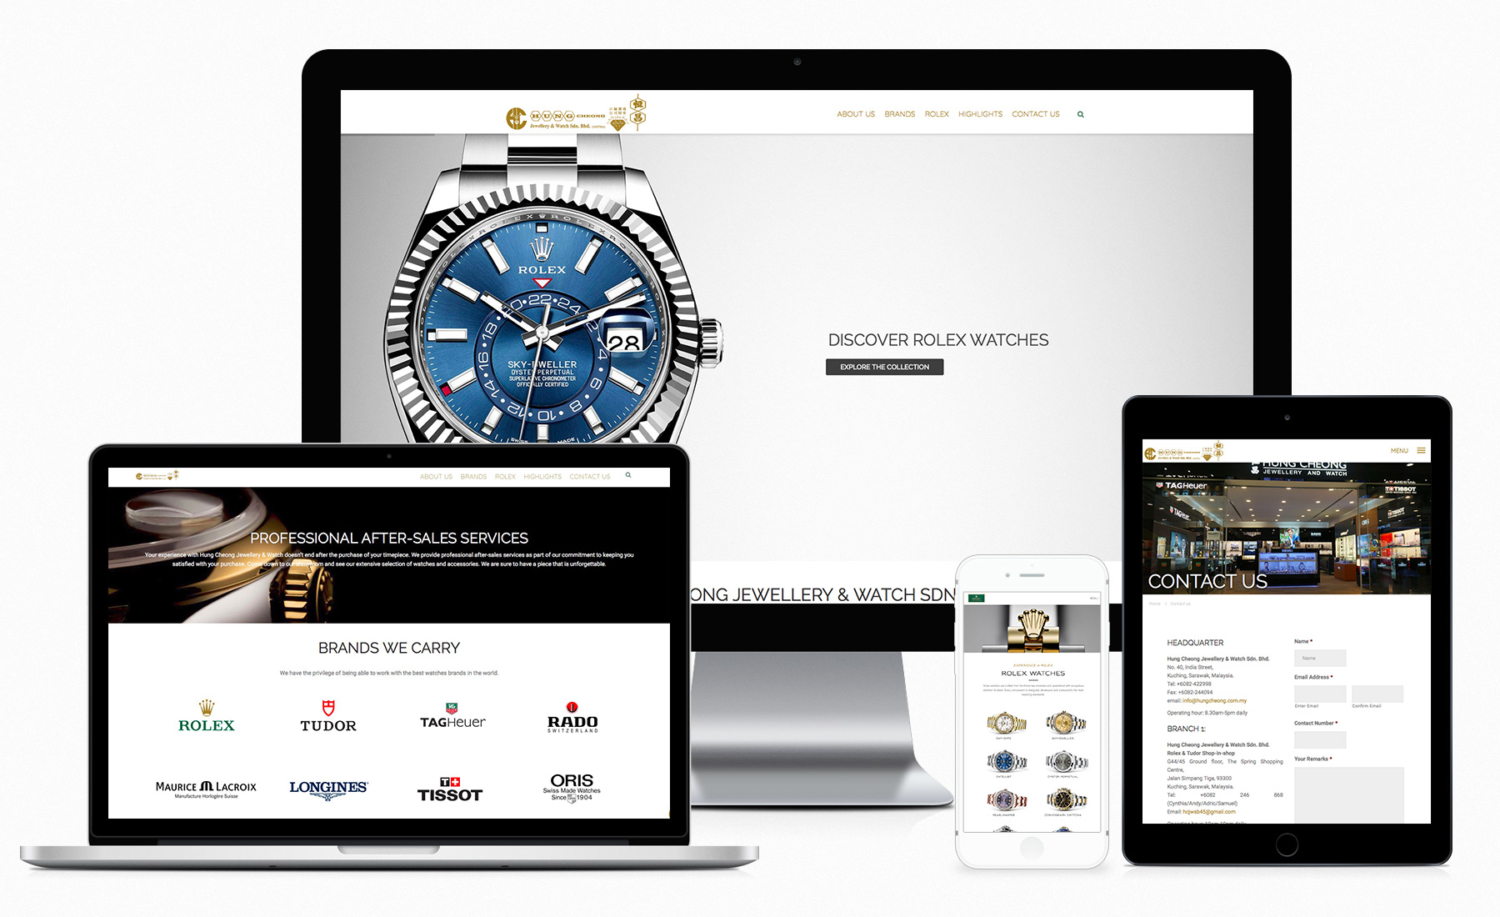 Hung Cheong Jewellery & Watch Sdn. Bhd. Official Website Design